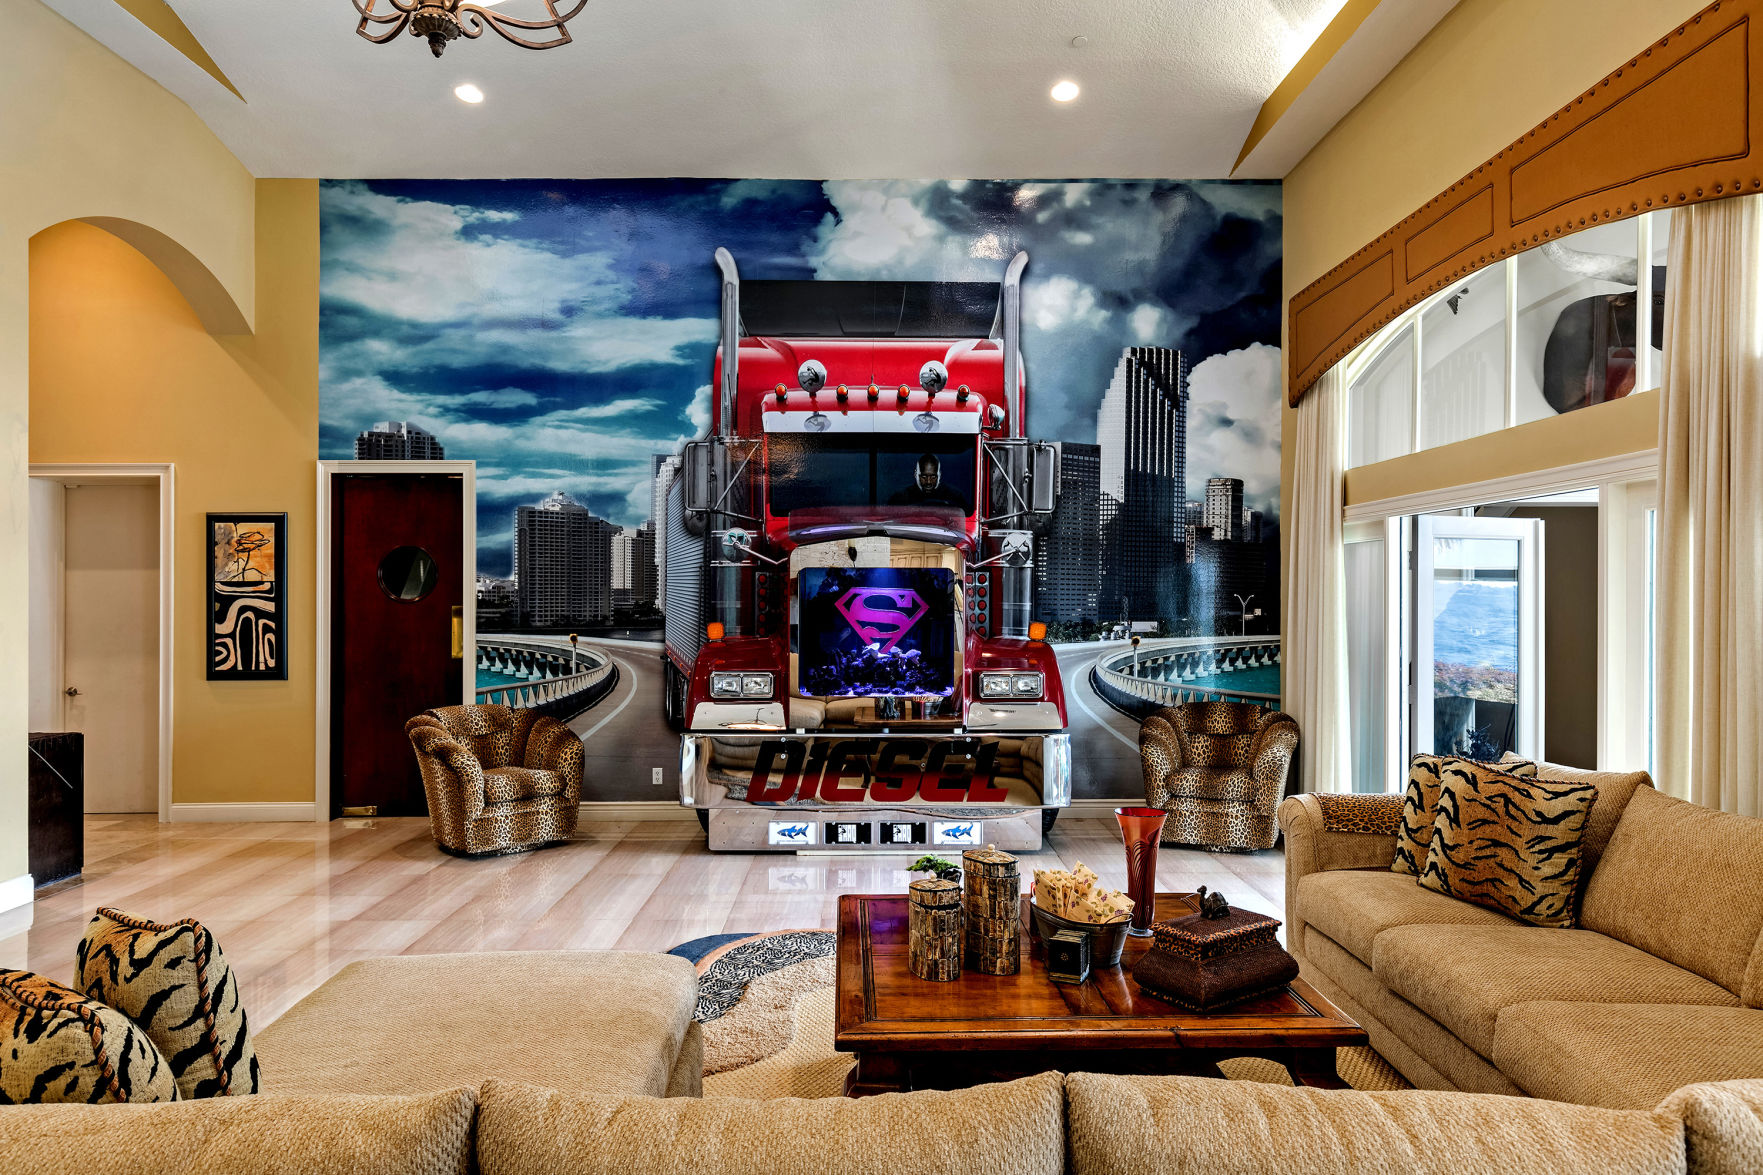 Cute Numerous Can Be This Superman Emblem Accents A Fish Tank Set Into Amural At Square Orlando Home Is Fittingly Larger Life Home Coupon Code Life Home Amazon Seller For Shaquille Complete houzz-03 Life And Home